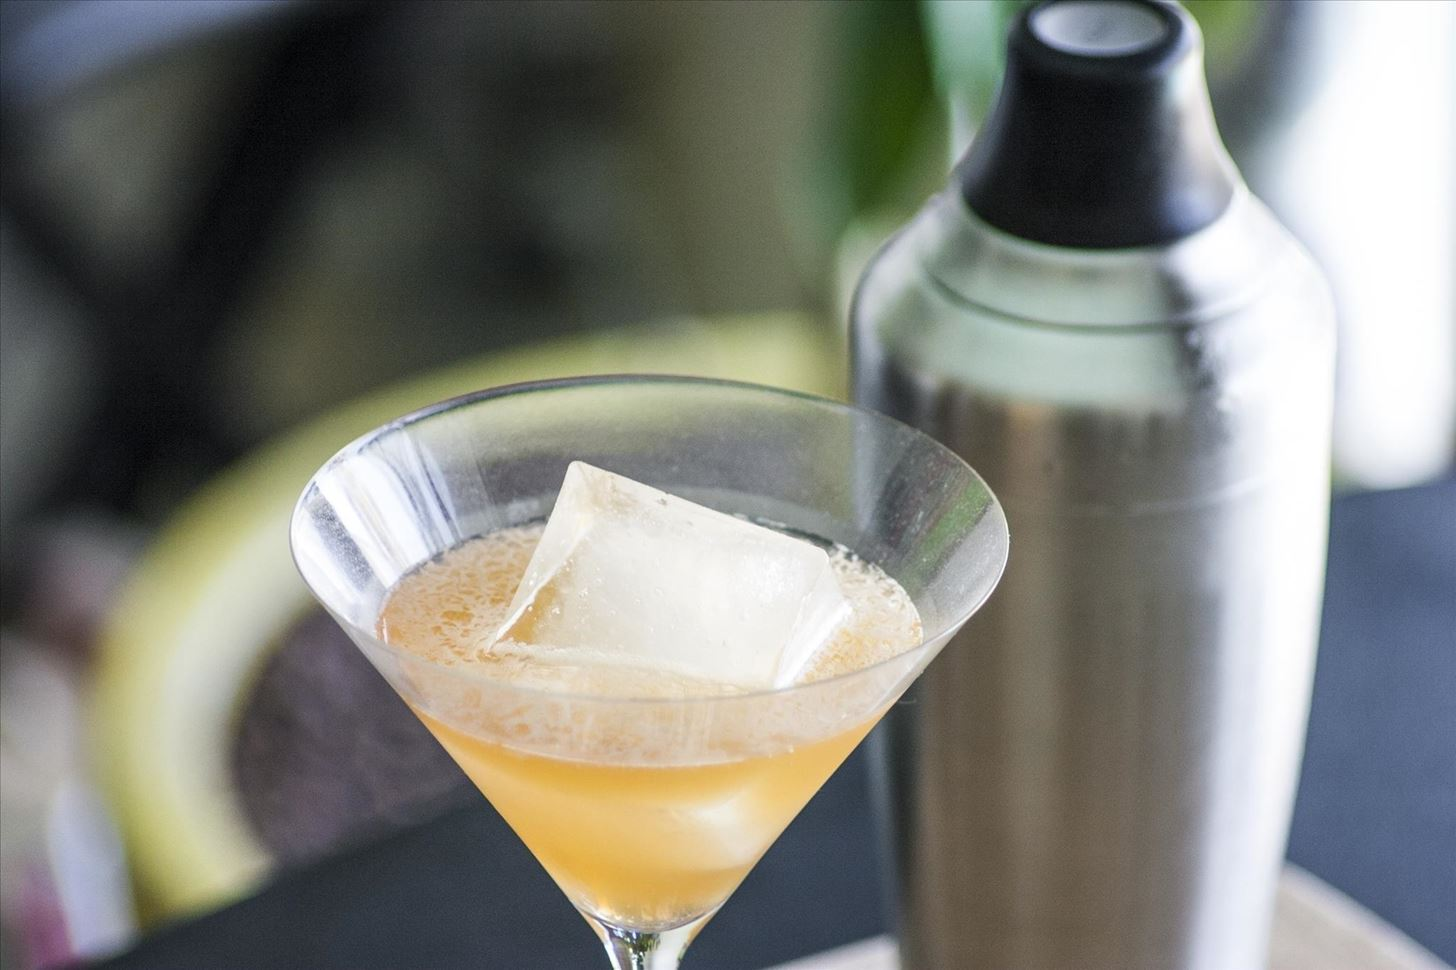 How to Make Smoked Ice for One-of-a-Kind Cocktails